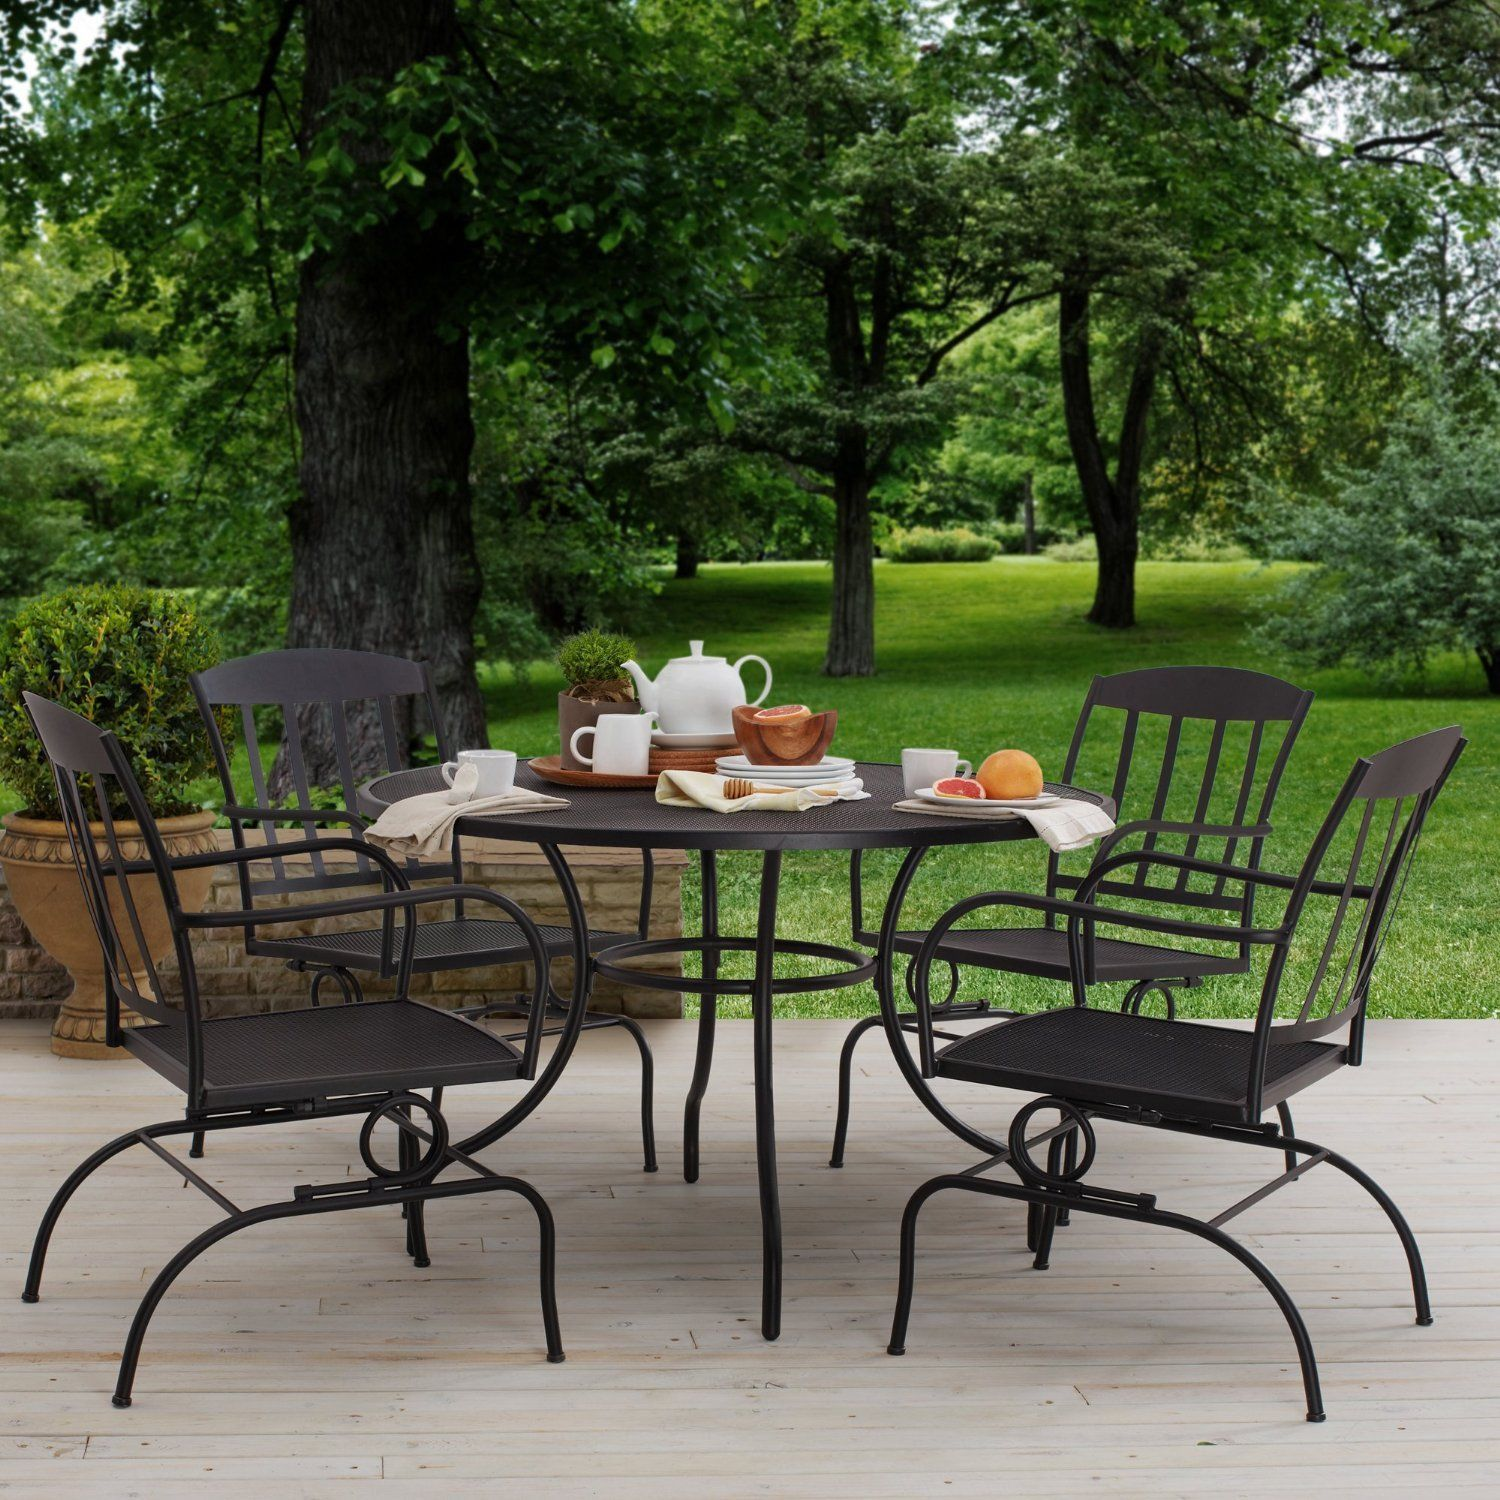 patio bistro table outdoor dining furniture deck porch backyard lawn